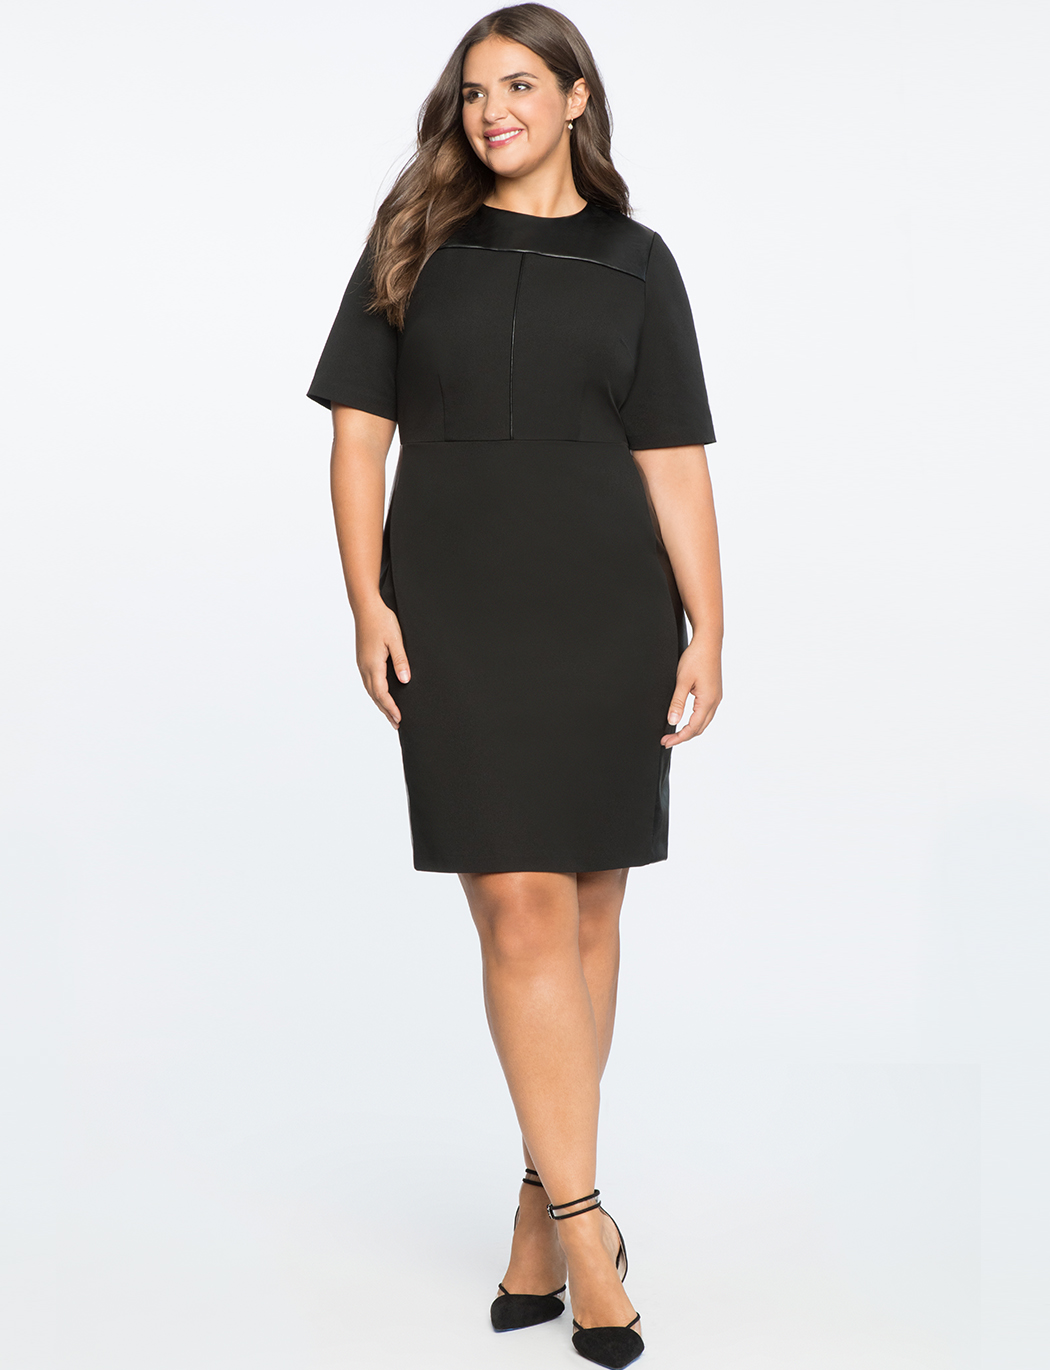 Premier Bi-Stretch Faux Leather Mix Work Dress